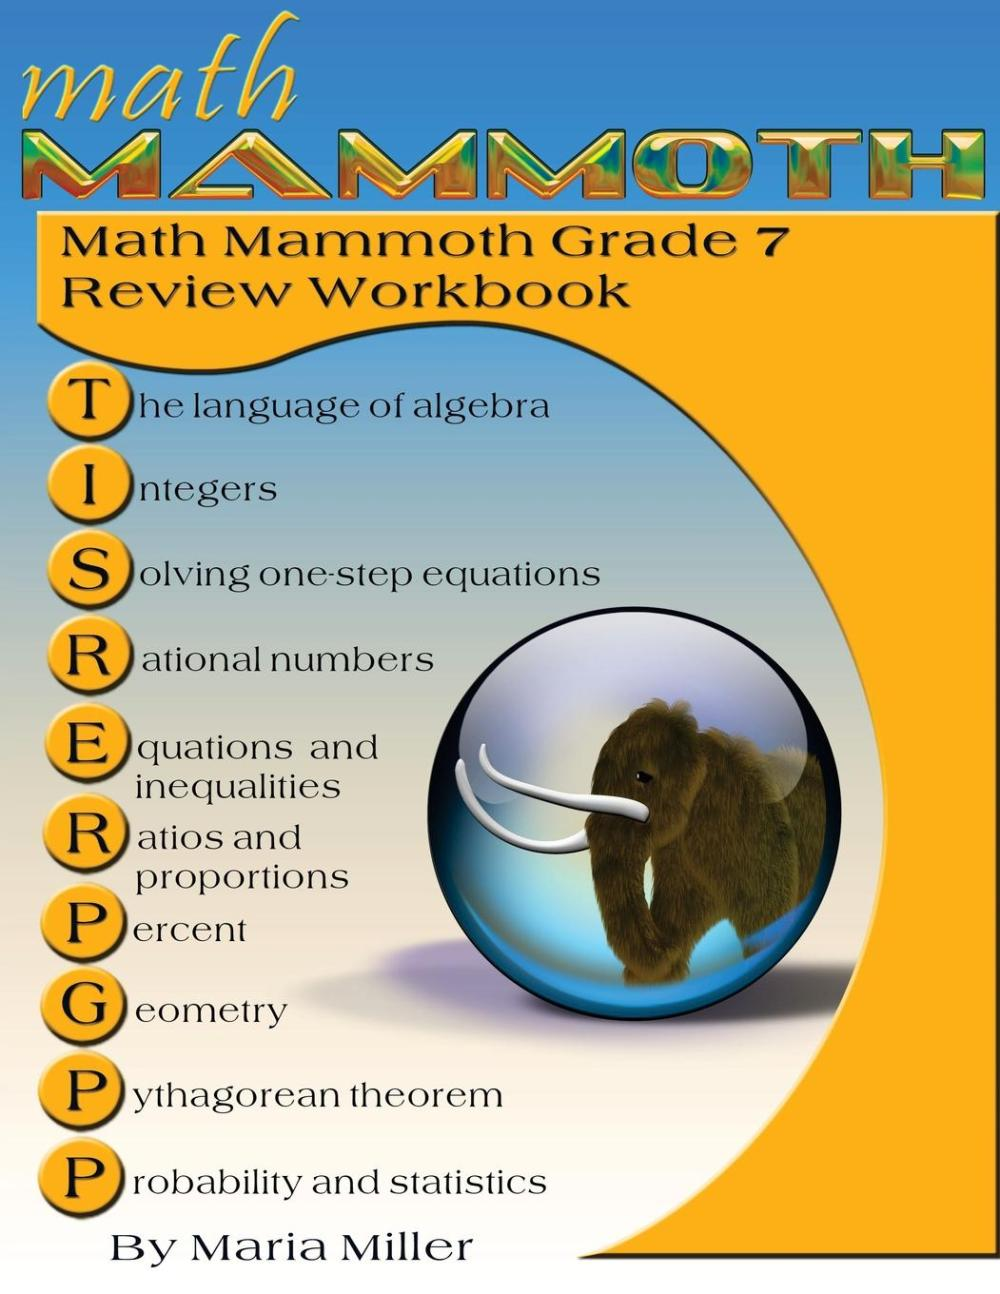 medium resolution of Math Mammoth Grade 7 Review Workbook - Walmart.com - Walmart.com